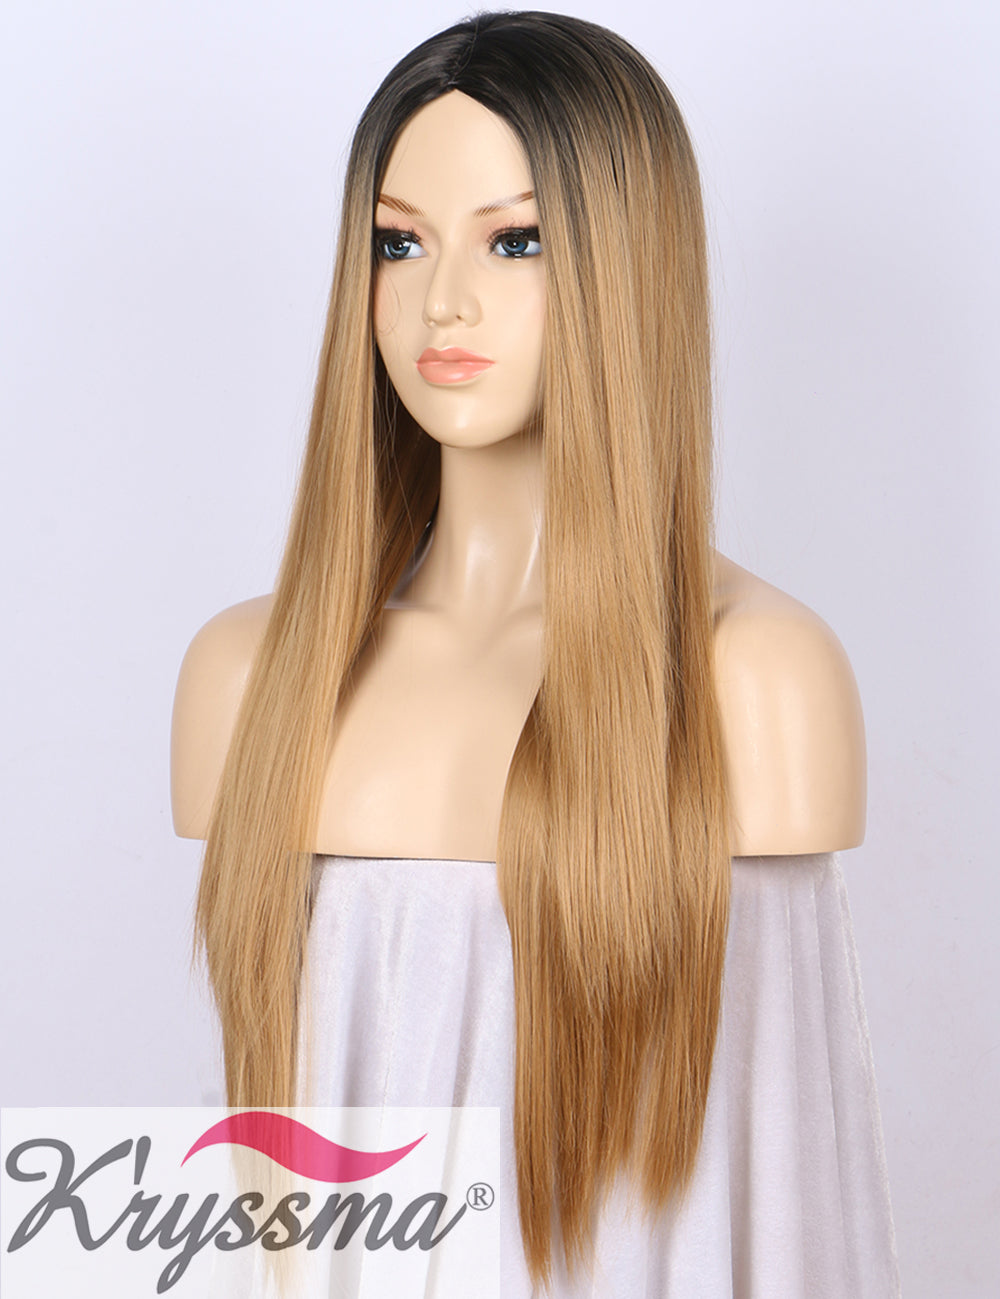 ... K ryssma Ombre Synthetic Wig M03800 - Full Machine Made Long Straight Blonde  Wig Black ... b4490e535c